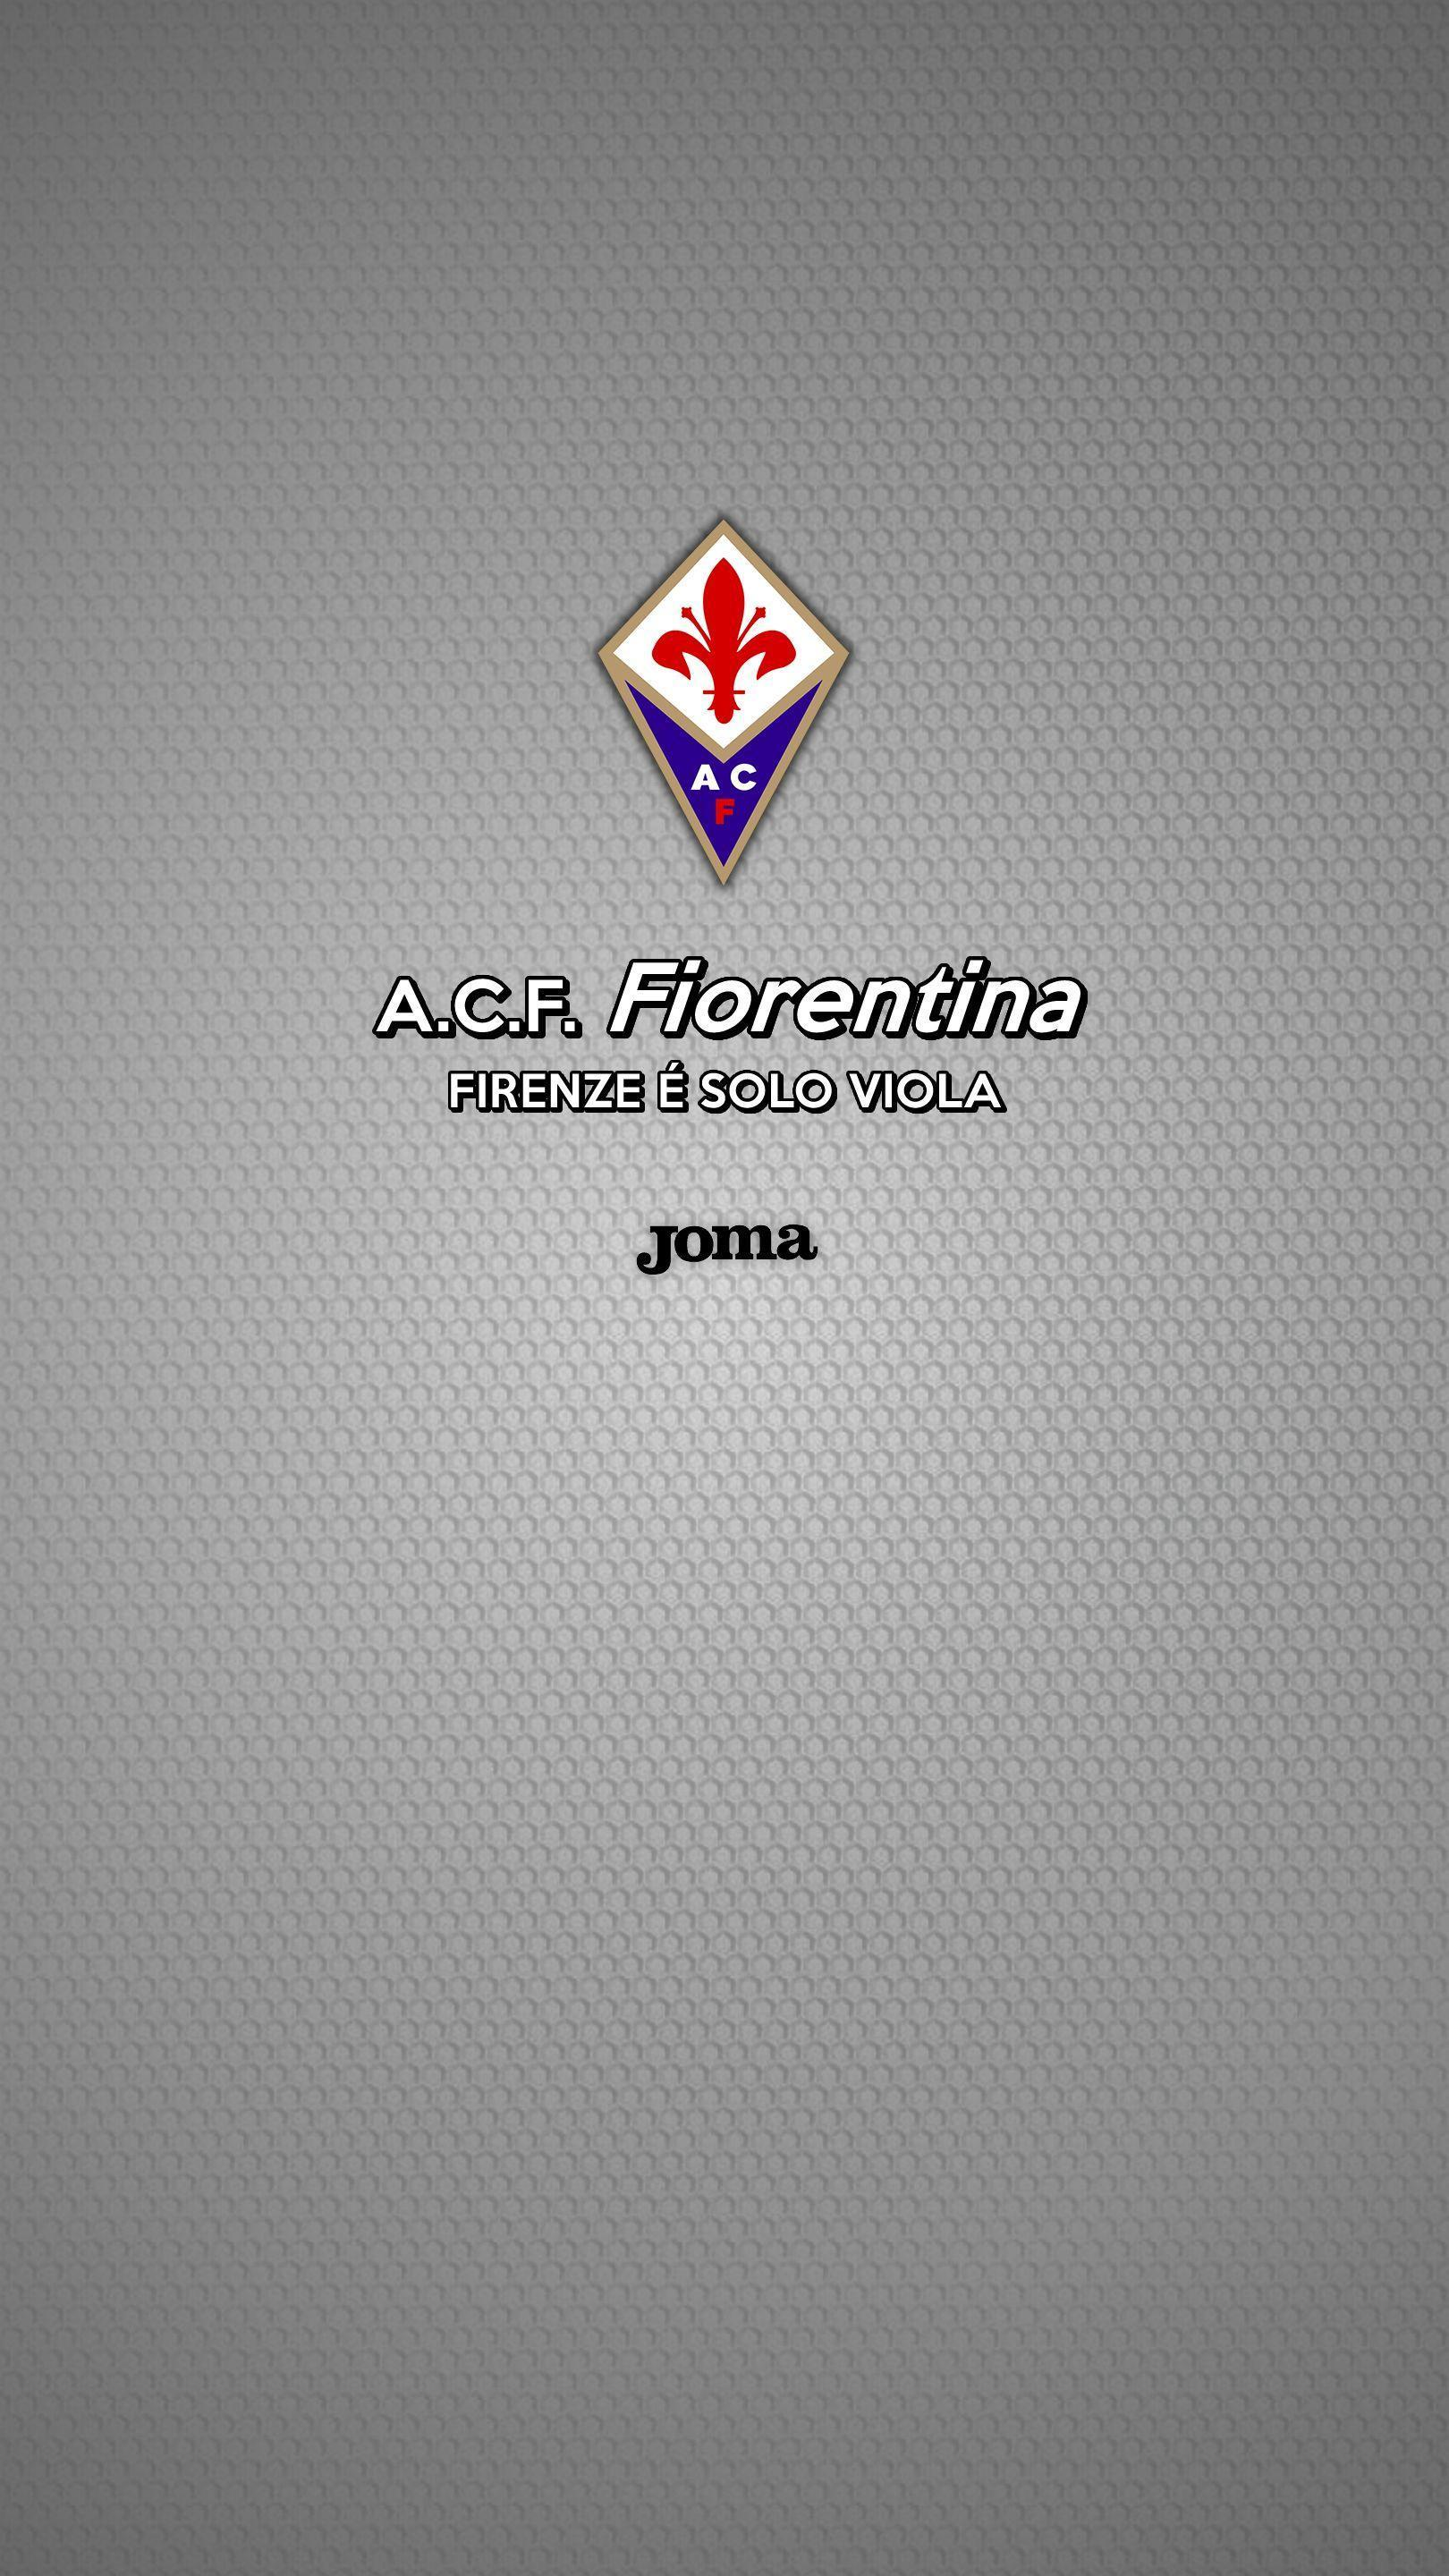 ACF Fiorentina Smartphone Wallpapers byGoloteHD 04